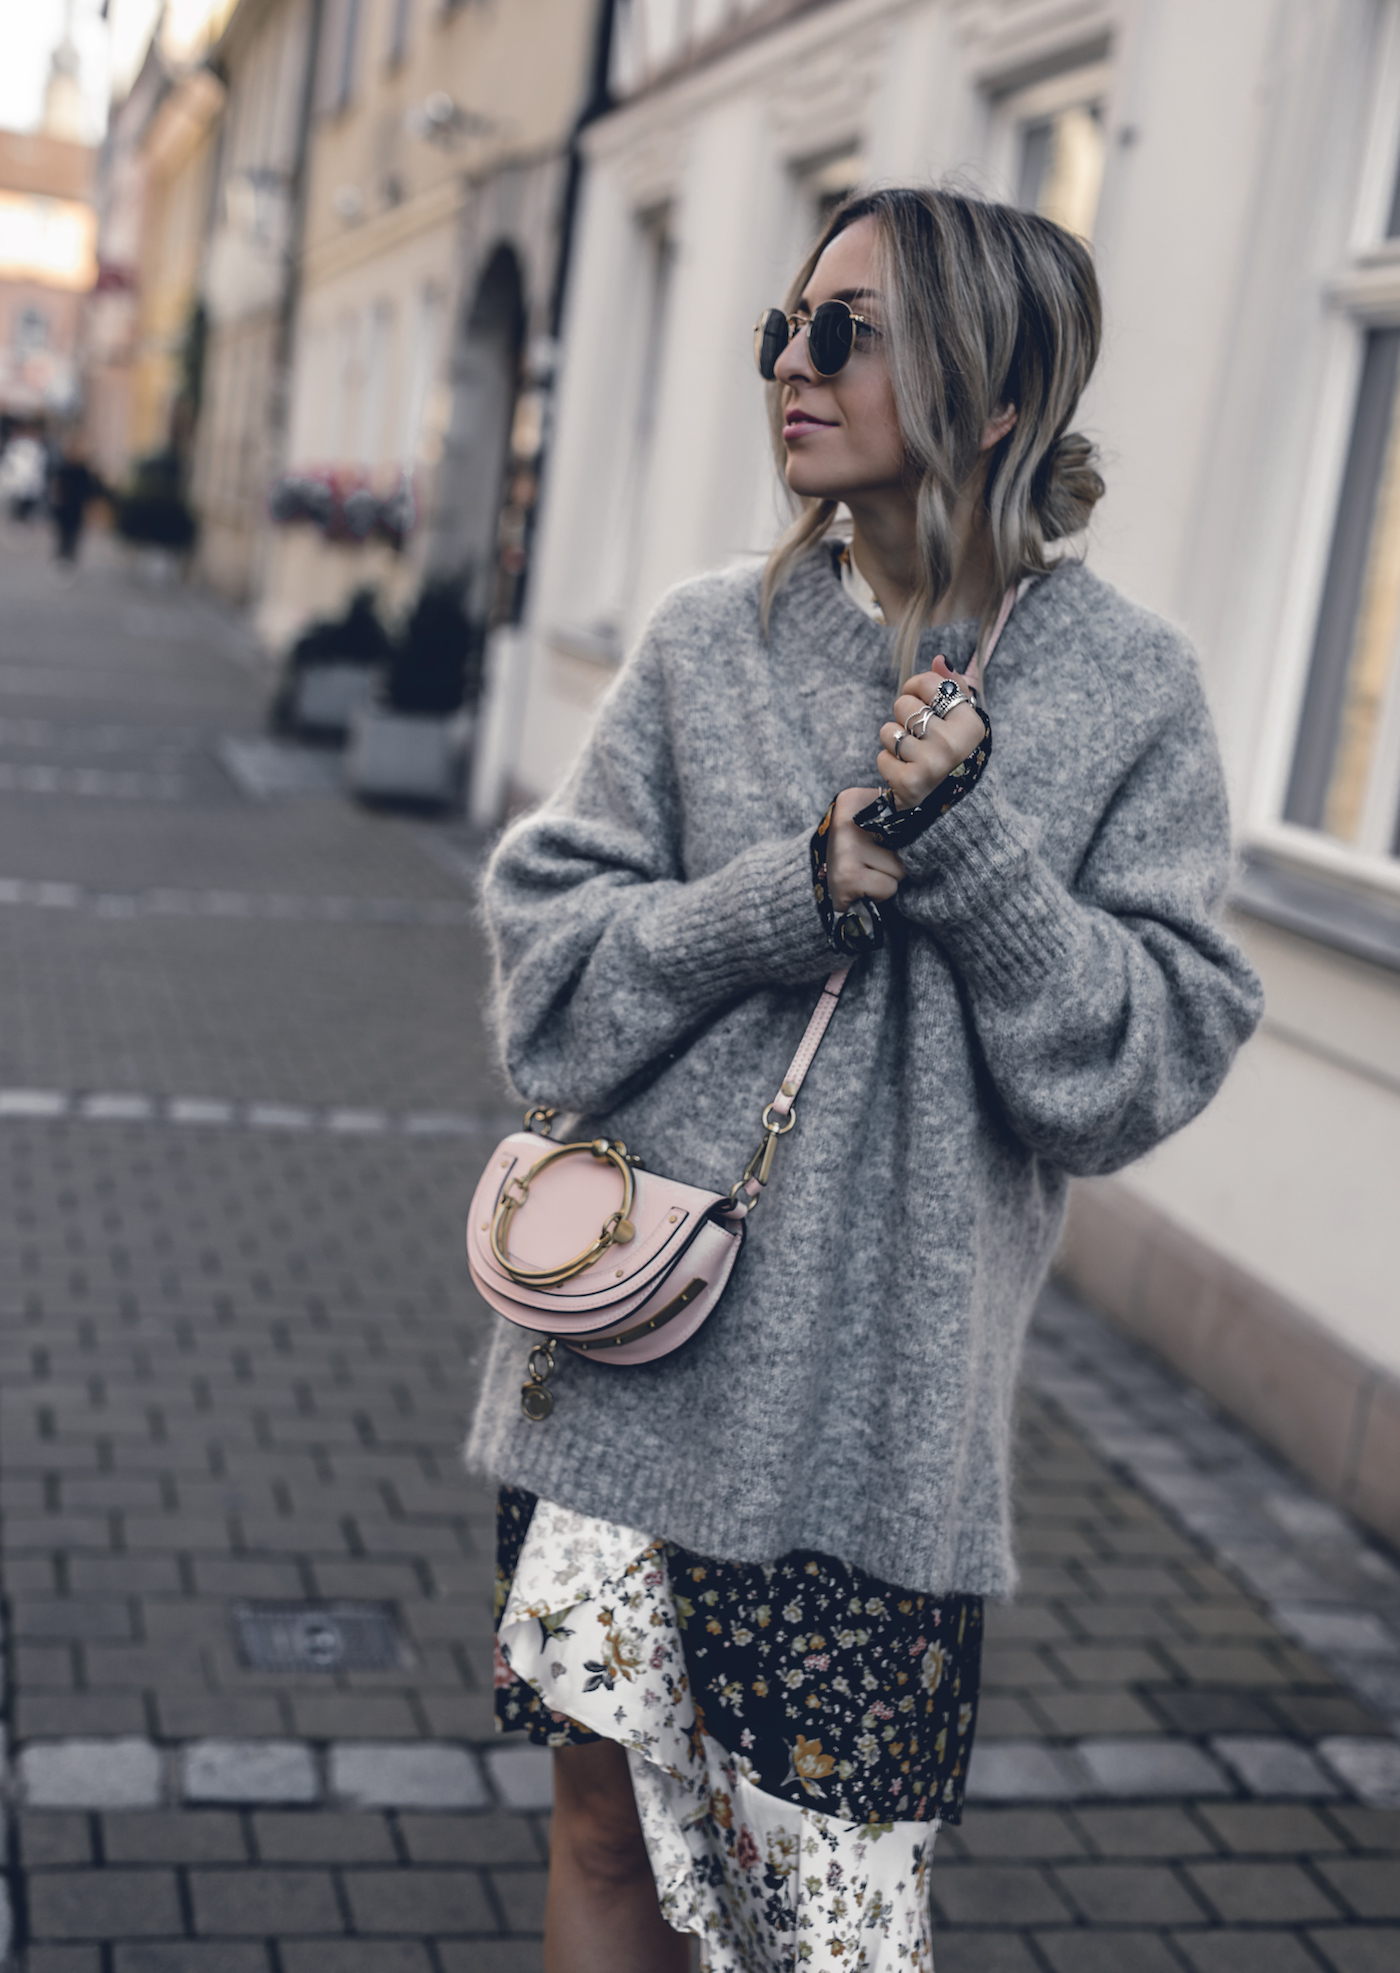 How to wear a dress in winter, street style 2017, layering looks, casual, booties, sweaters | Seen on Want Get Repeat